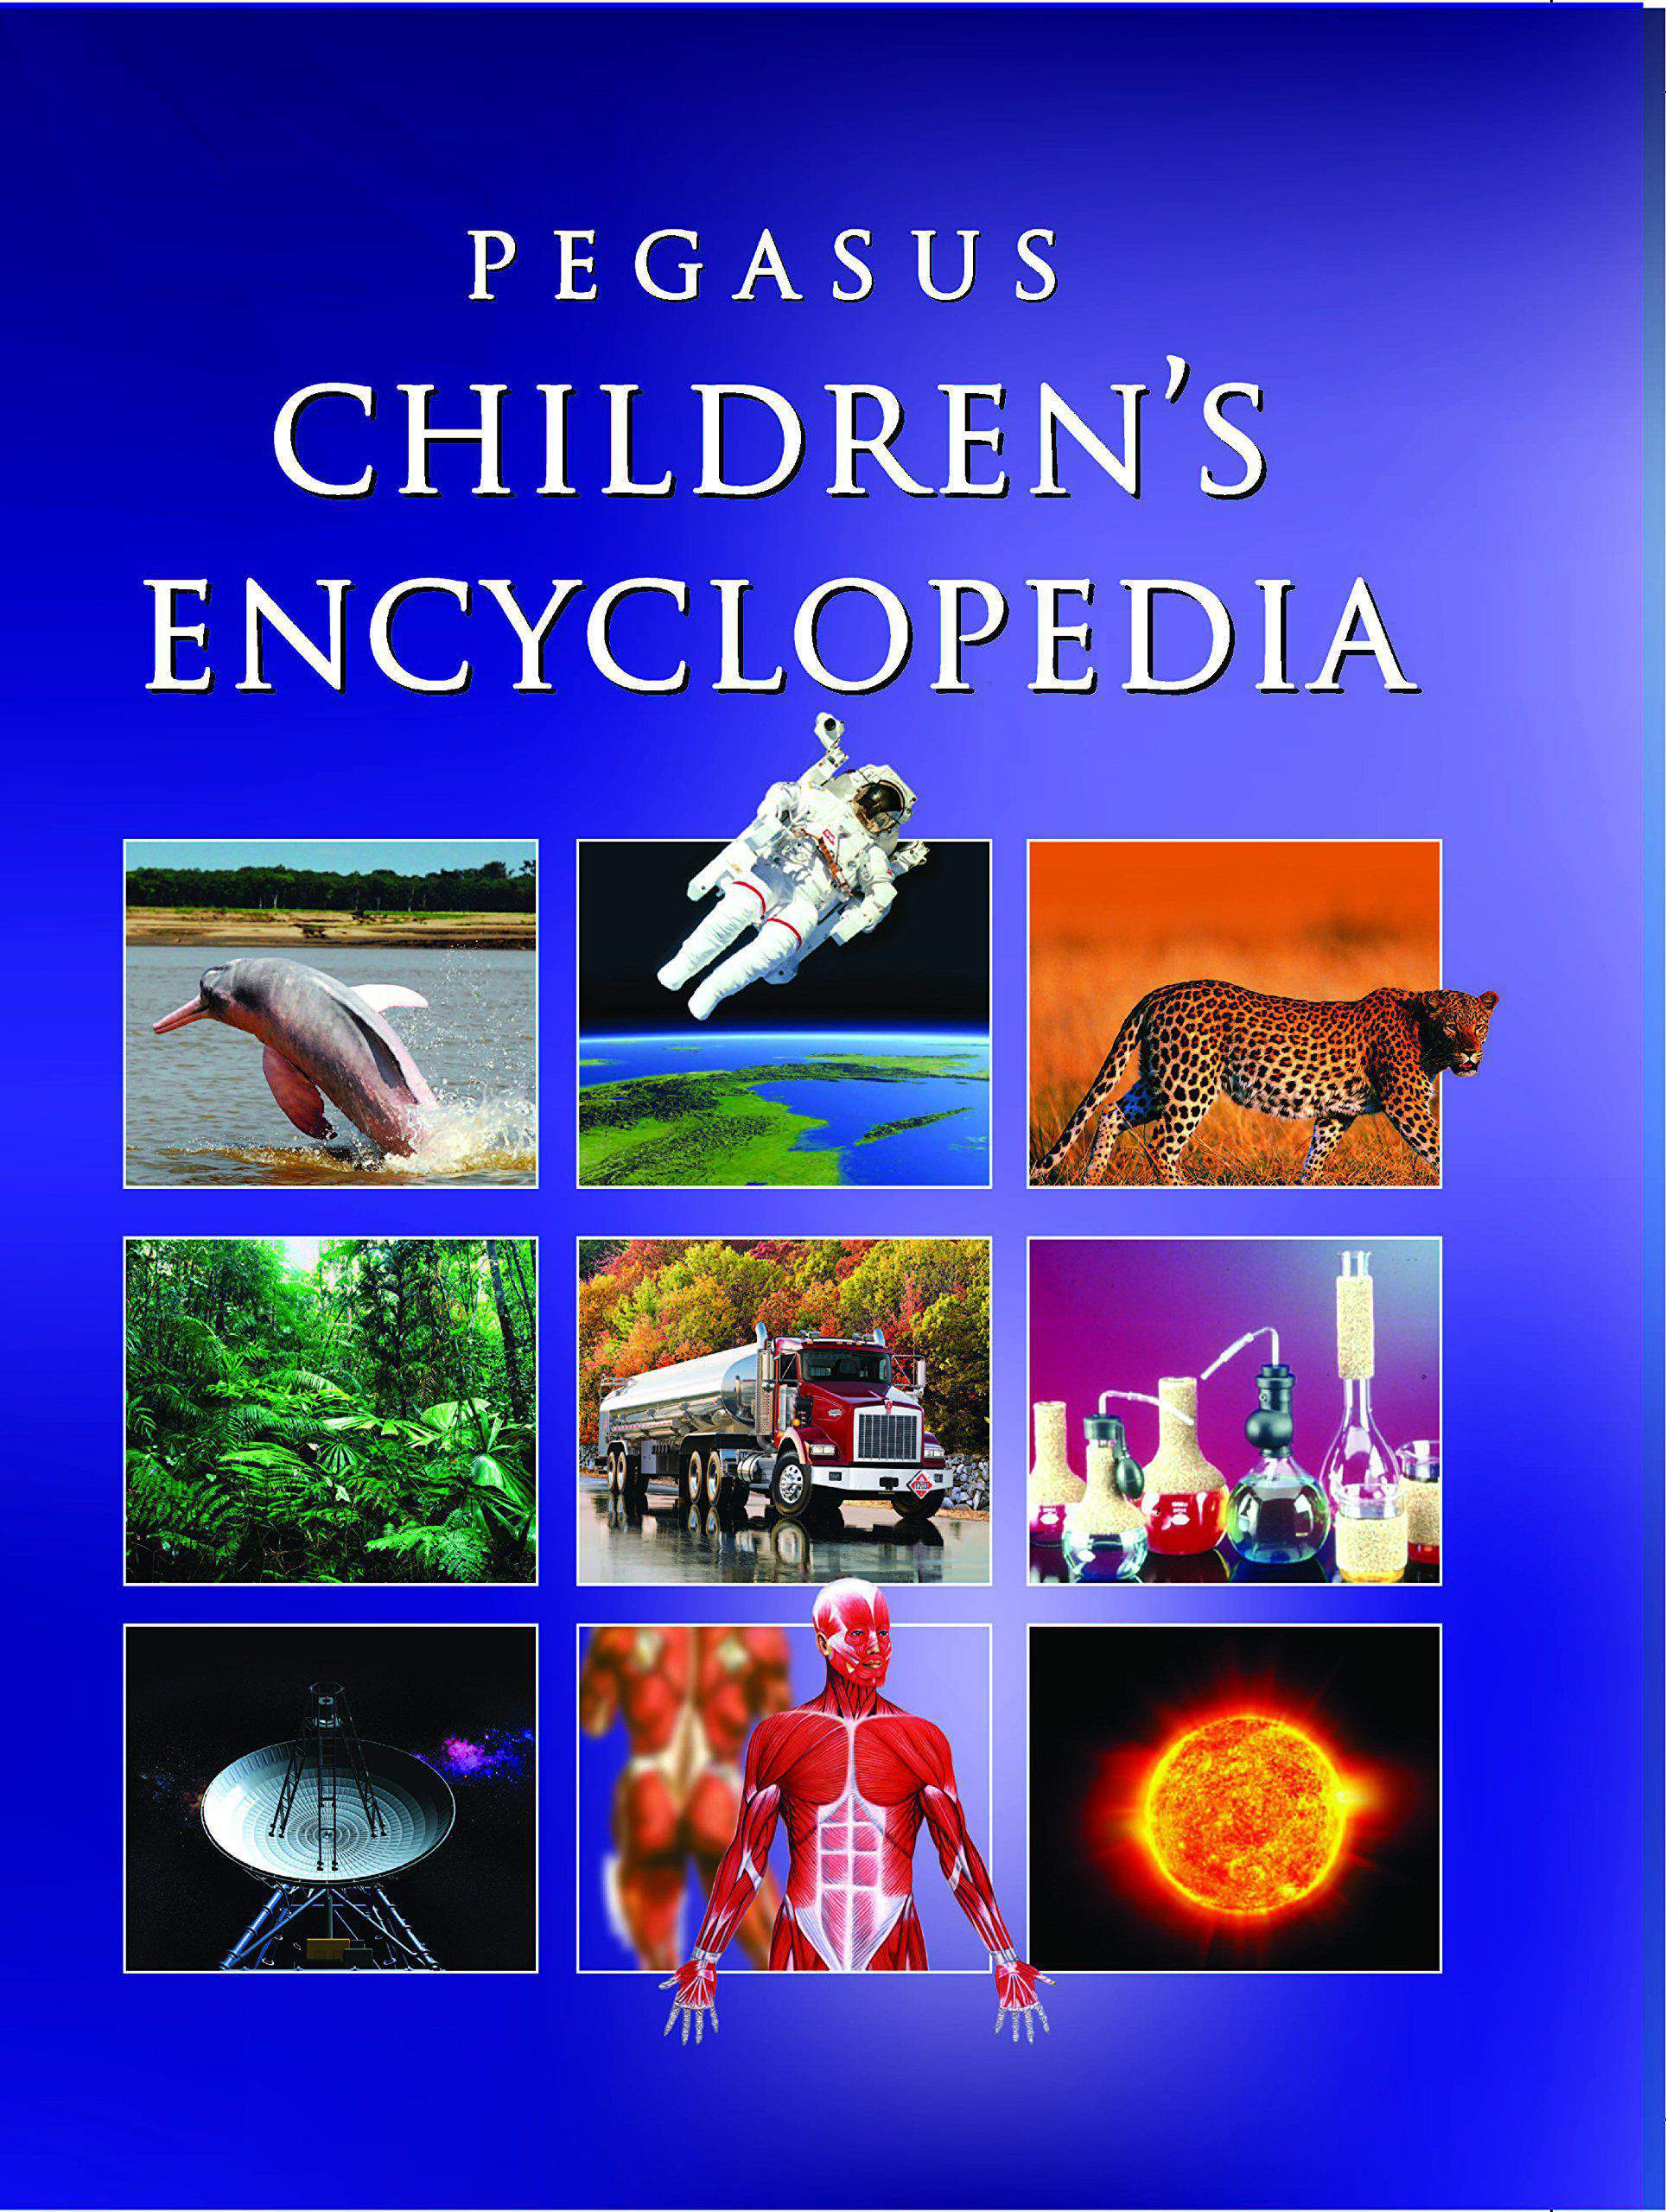 PEGASUS CHILDRENS ENCYCLOPEDIA